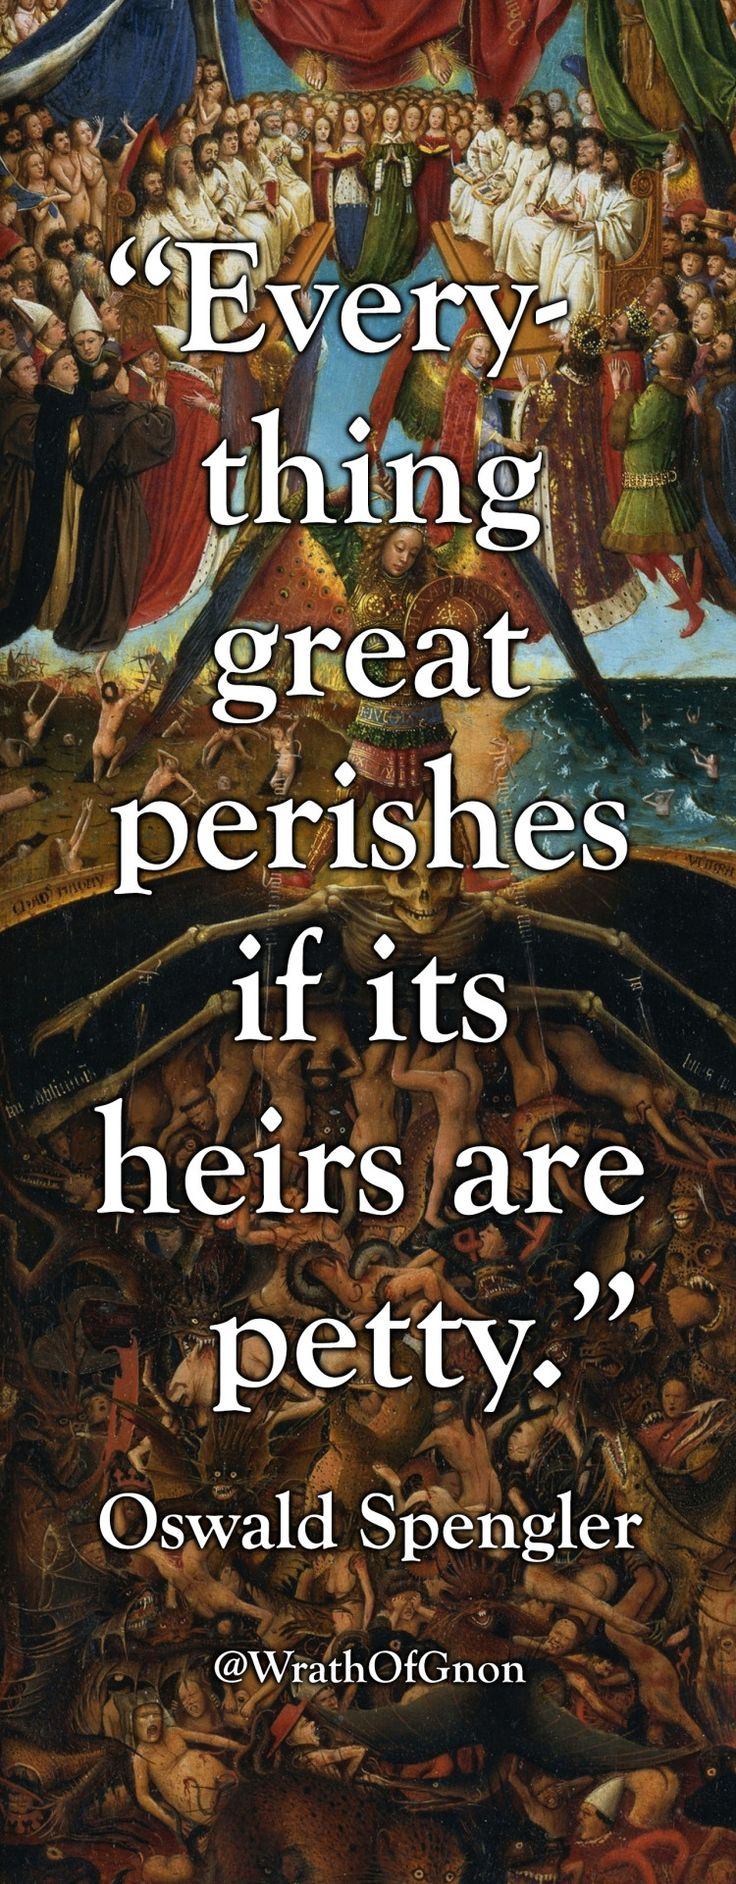 """""""Everything great perishes if its heirs are petty."""" — Oswald Spengler"""